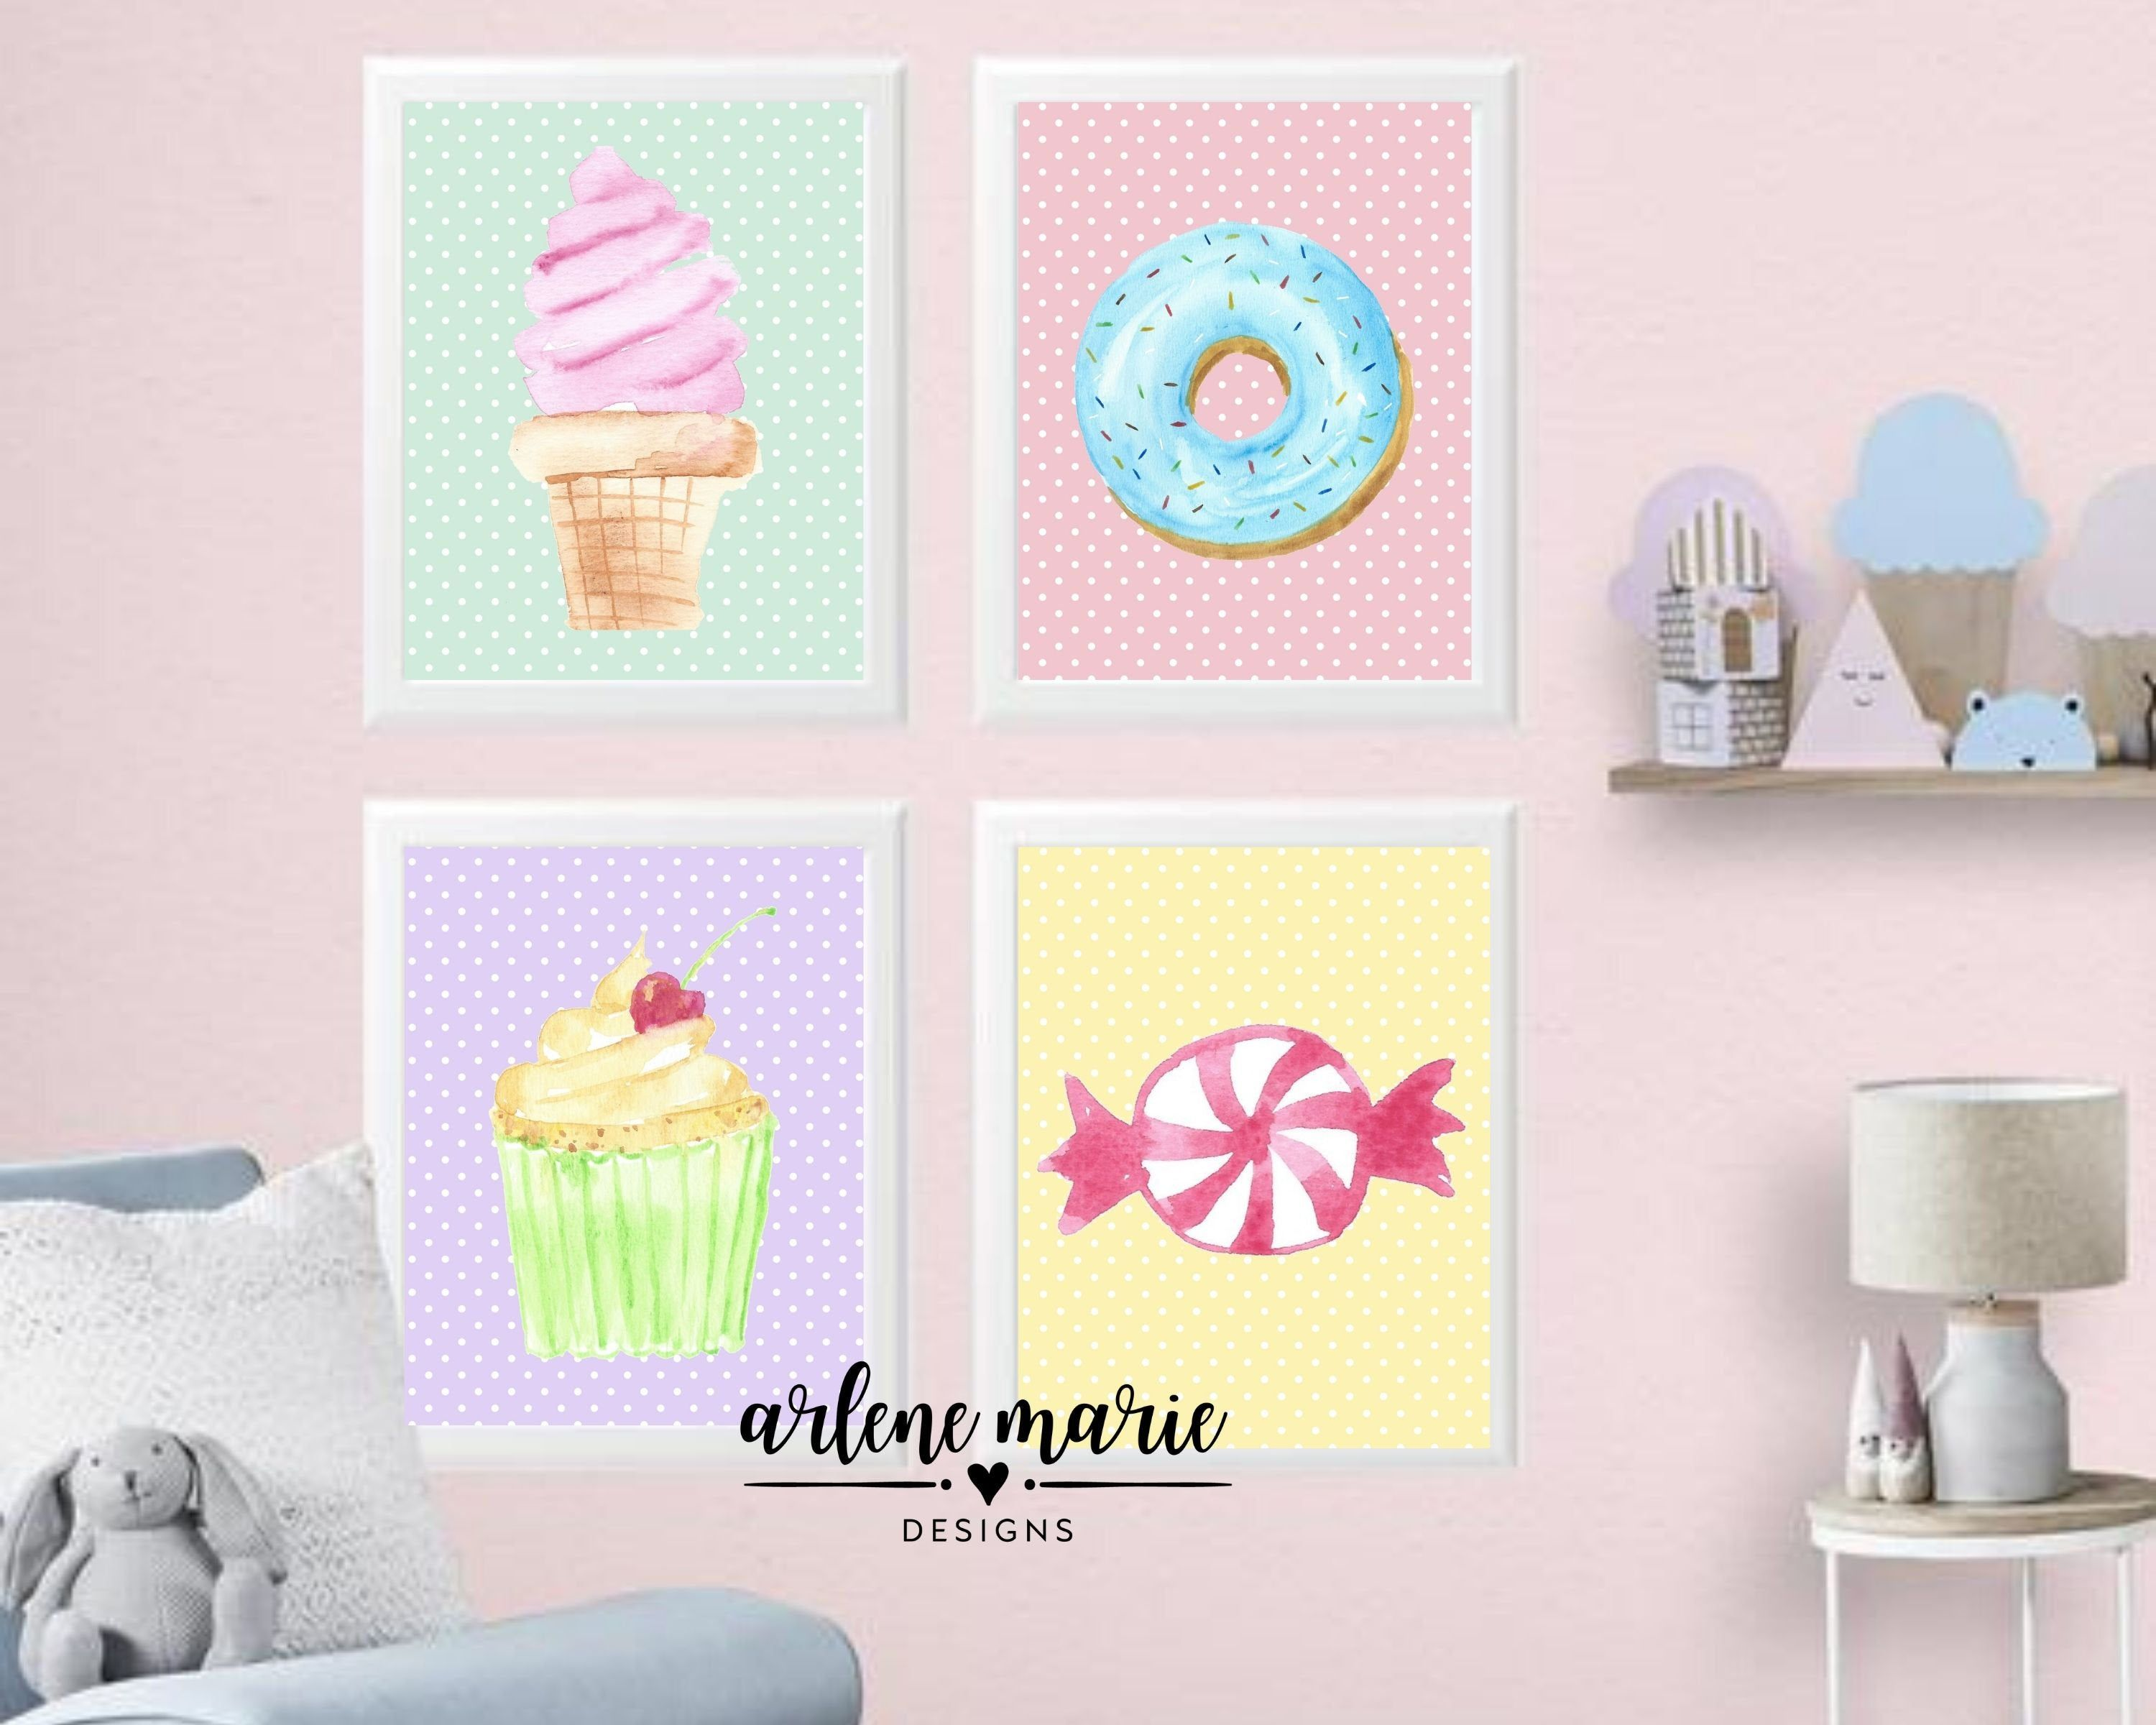 Sweet Treats Printable Wall Art Candy Wall Art Ice Cream Etsy In 2021 Kids Room Wall Art Candy Themed Bedroom Cupcake Room Decor Cupcake decor for bedroom